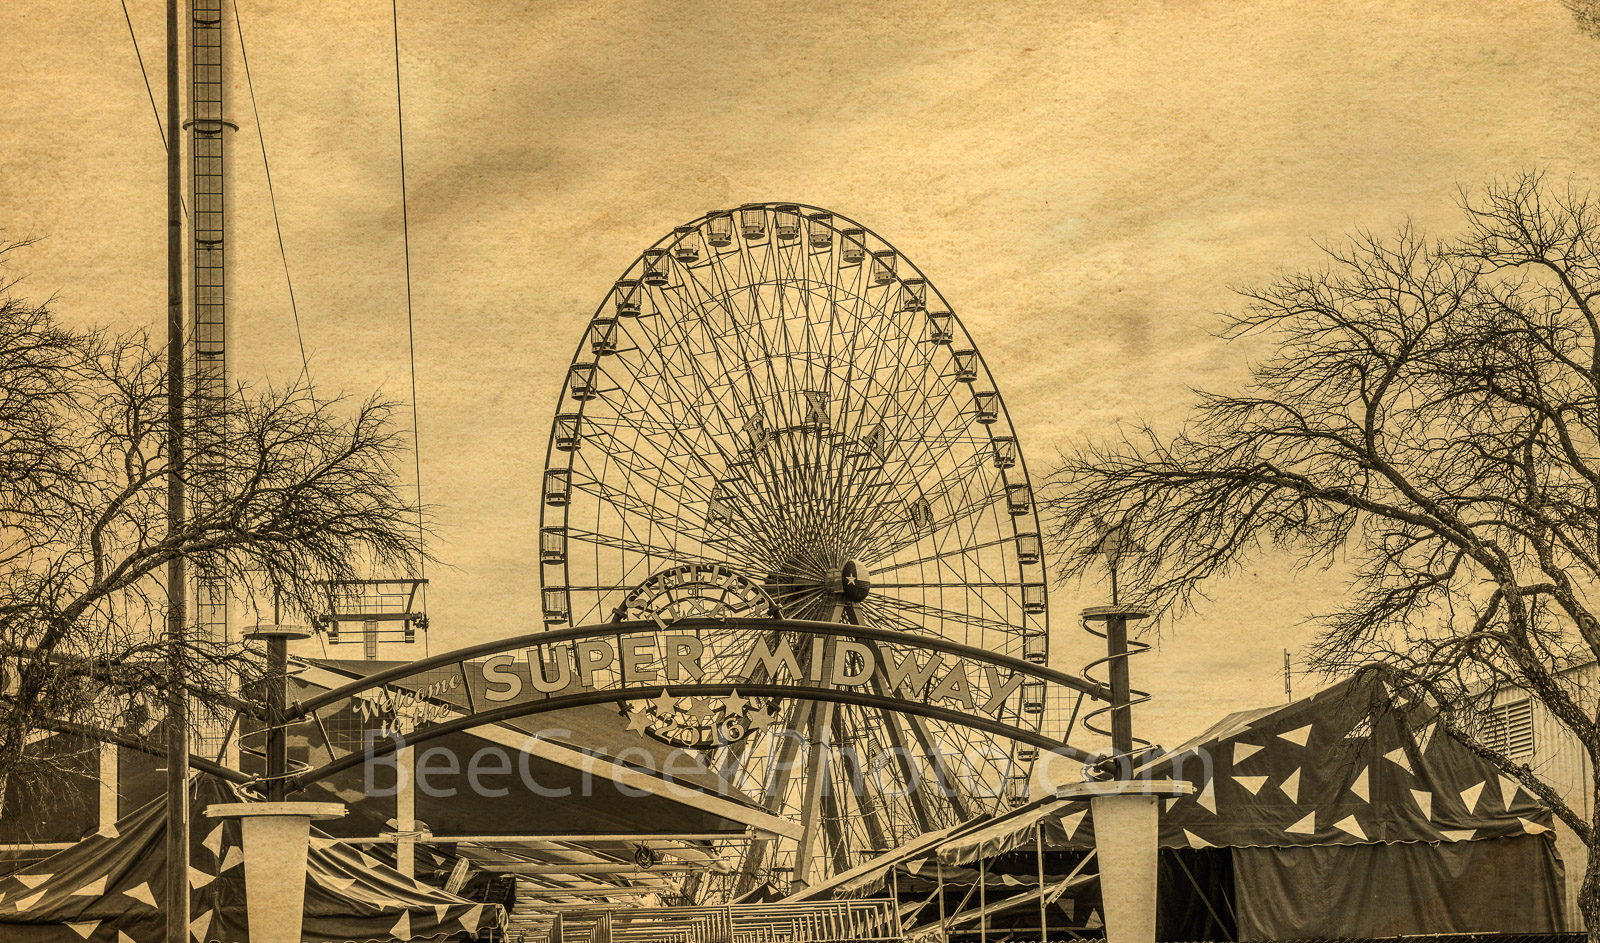 Dallas, Ferris wheel, Texas Star, Texas State Fair, amusement park, rides. museums, vintage, Fair Park, State fair, America, 1800, landmark,  music events, beer gardens, auto show, sepia,